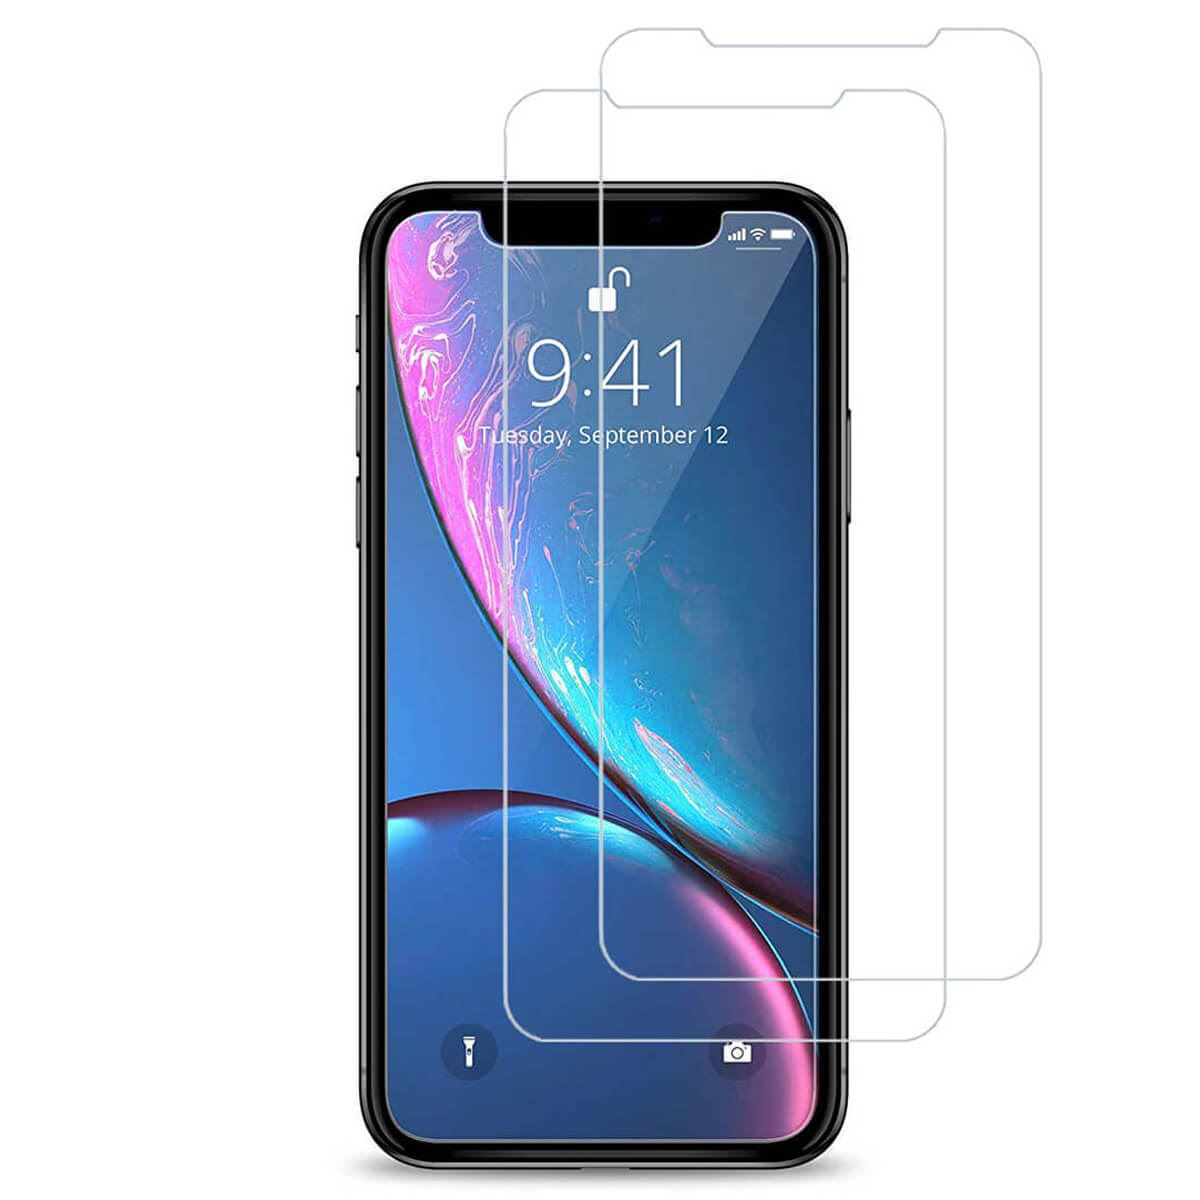 Tempered-Glass-Film-Screen-Protector-For-iPhone-12-Pro-Max-Mini-XR-XS-Max-8-7-6s thumbnail 50